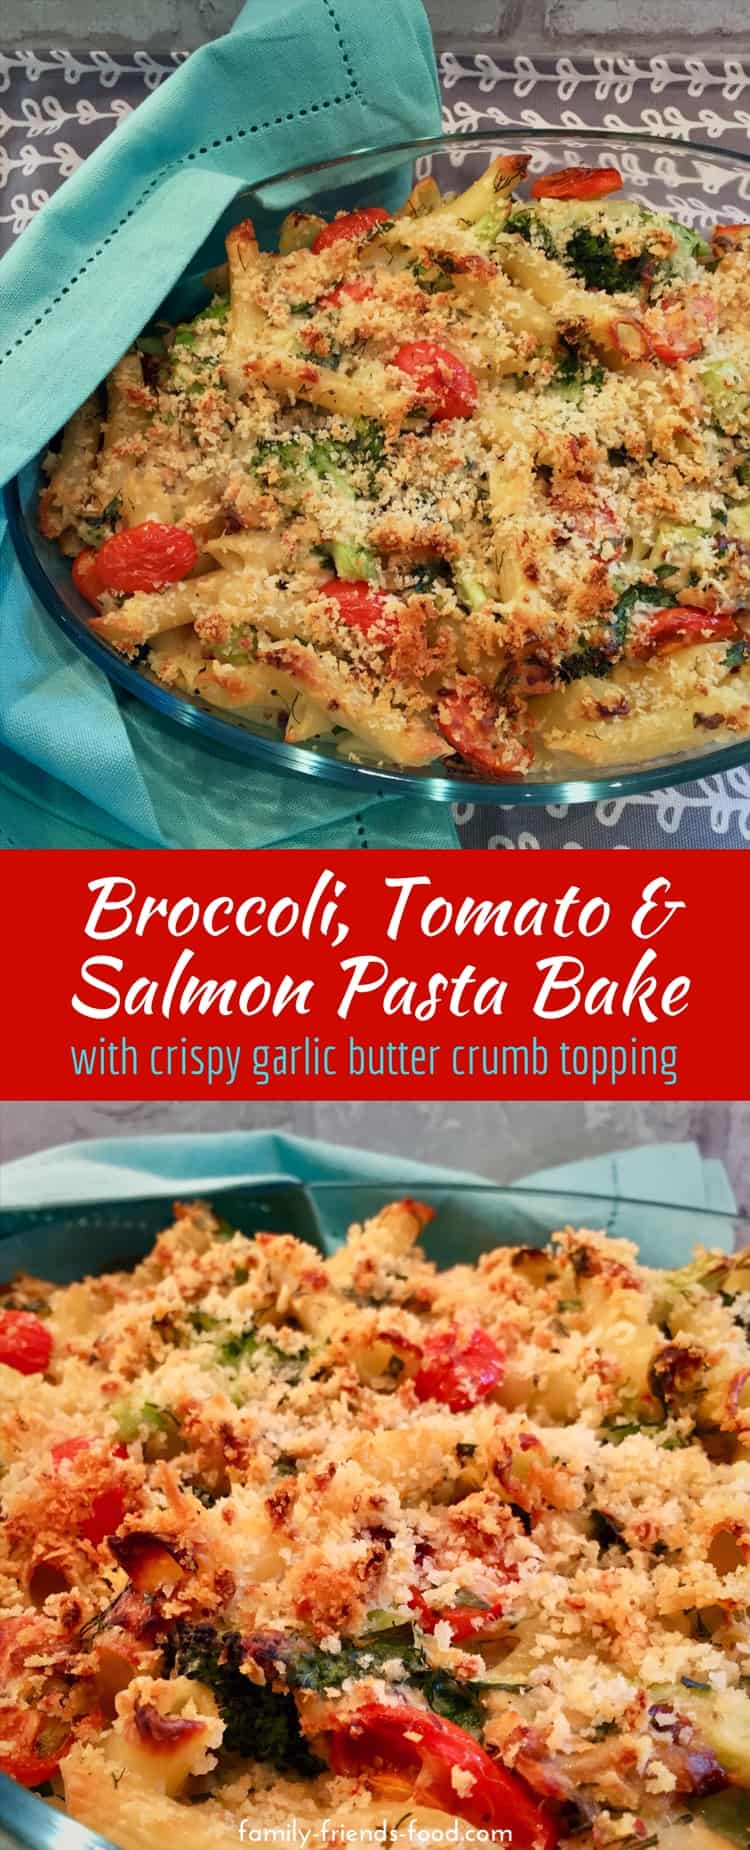 Full of fresh flavours and blanketed with a layer of crispy golden crumbs, this delicious salmon pasta bake is simple to make but fancy enough for company. A wonderful dairy dinner dish that's perfect for Spring or anytime!